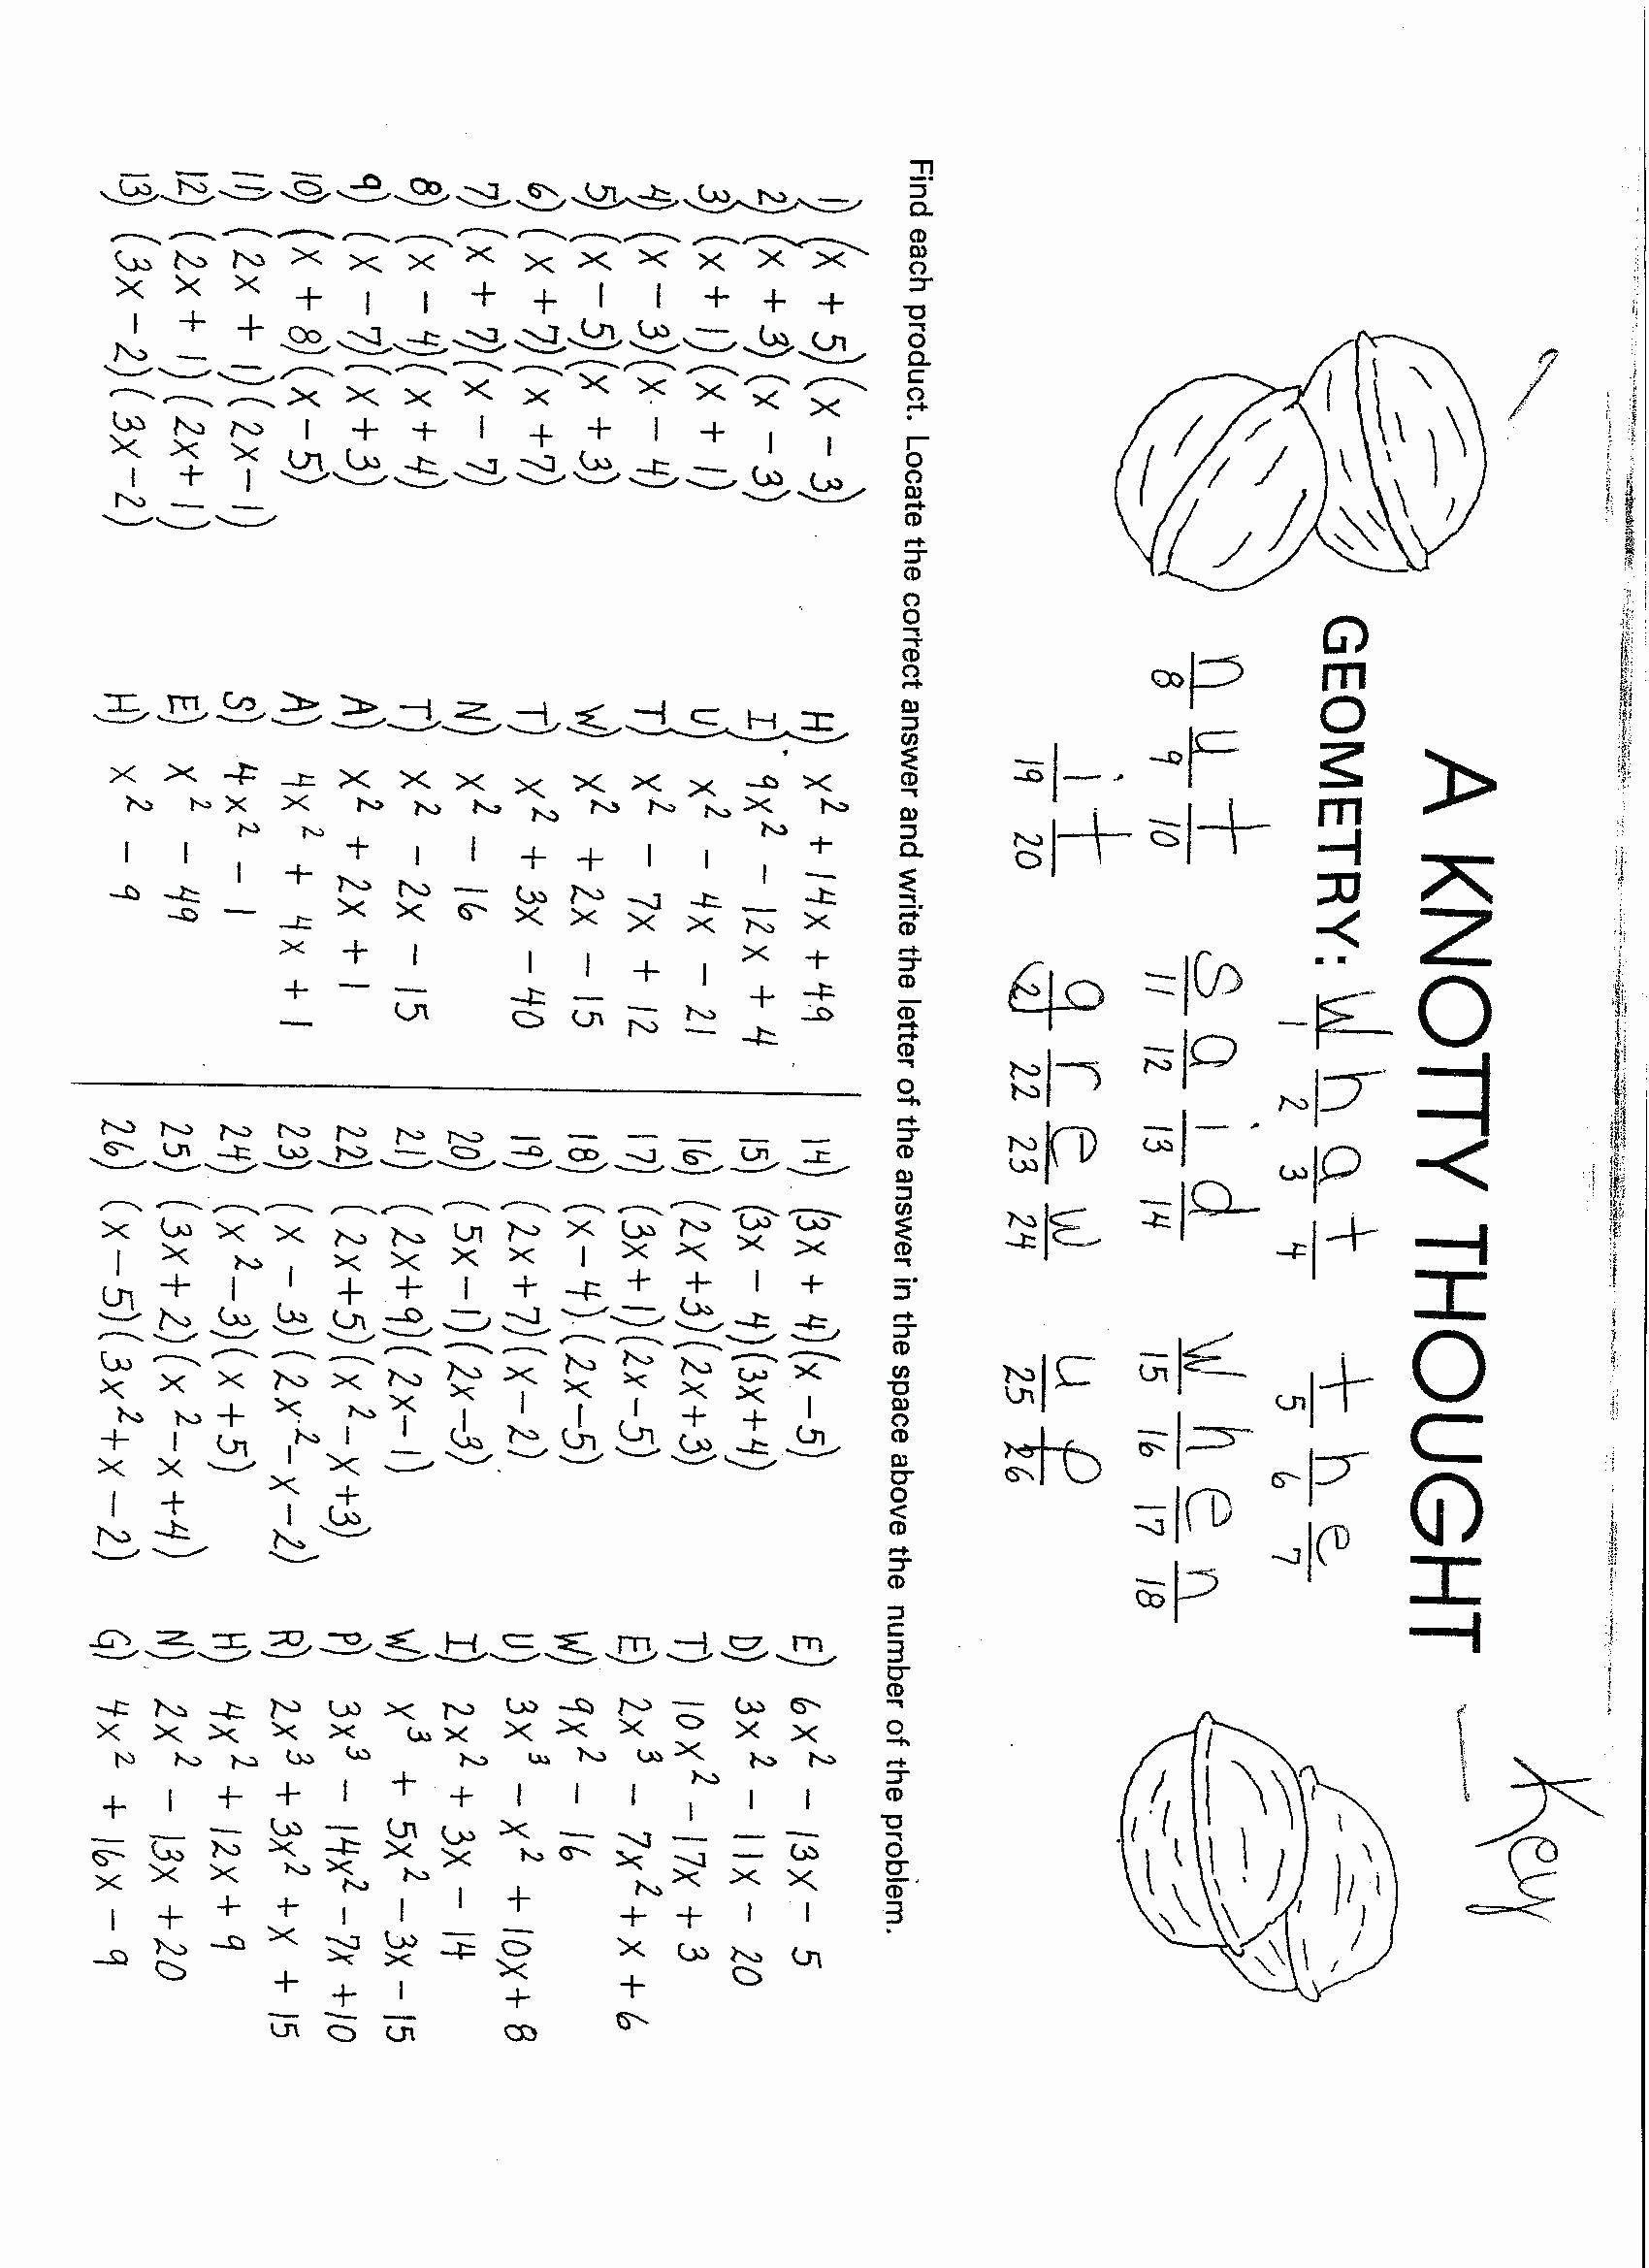 Operations with Polynomials Worksheet Operations with Polynomials Worksheet Unique Distributive